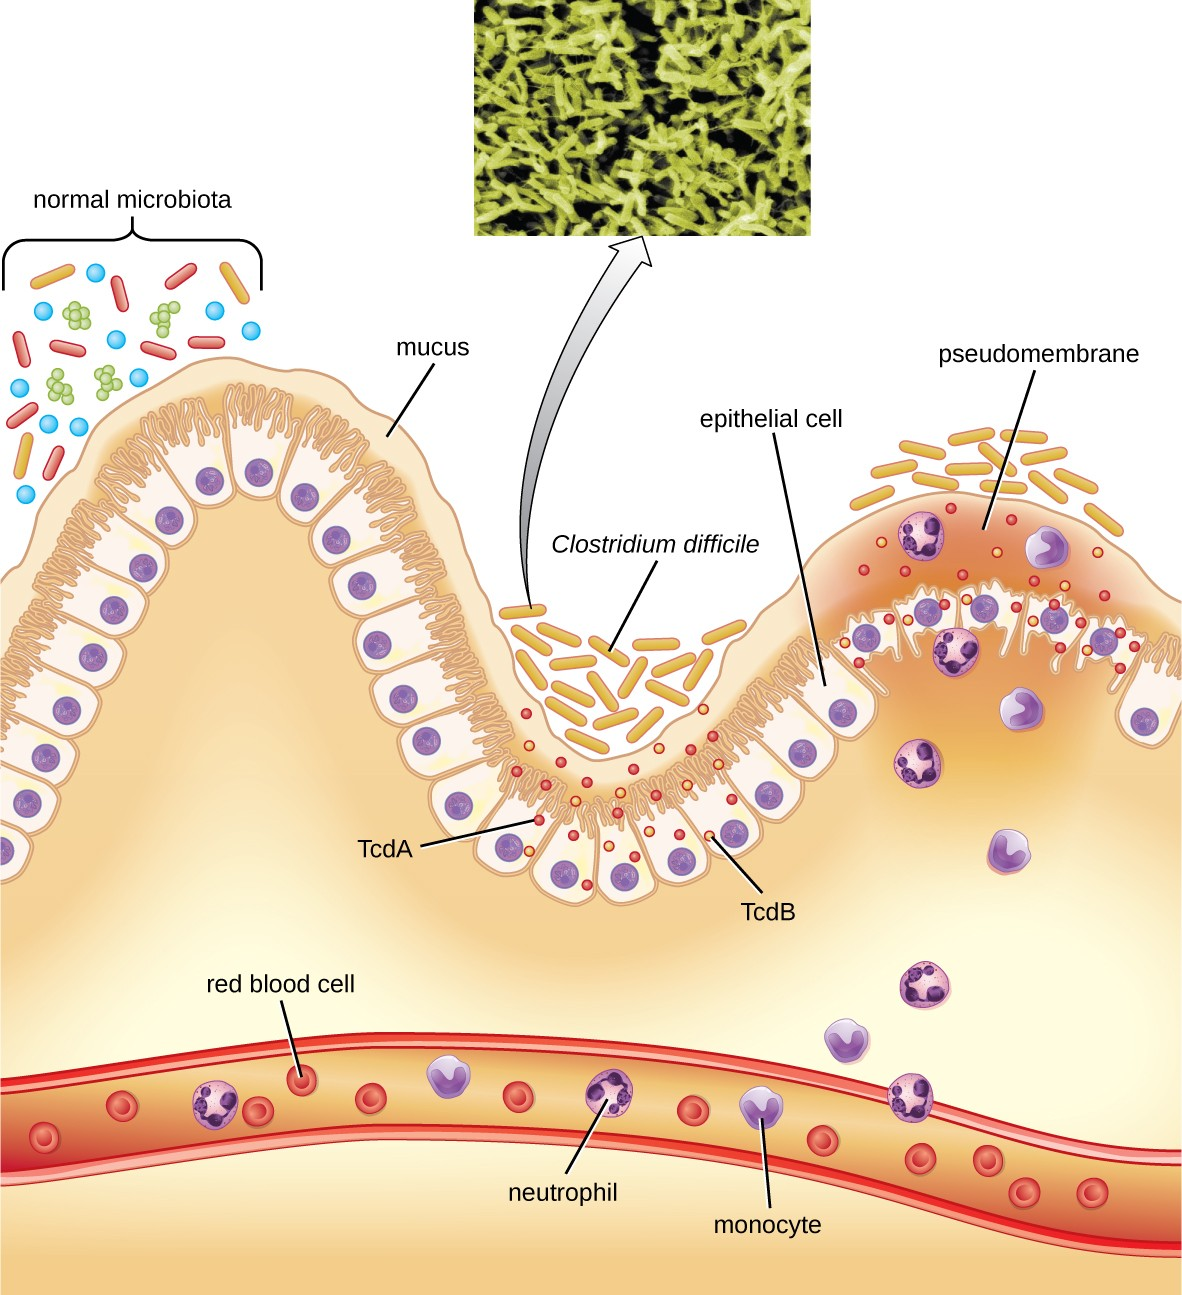 Bacterial Infections Of The Gastrointestinal Tract